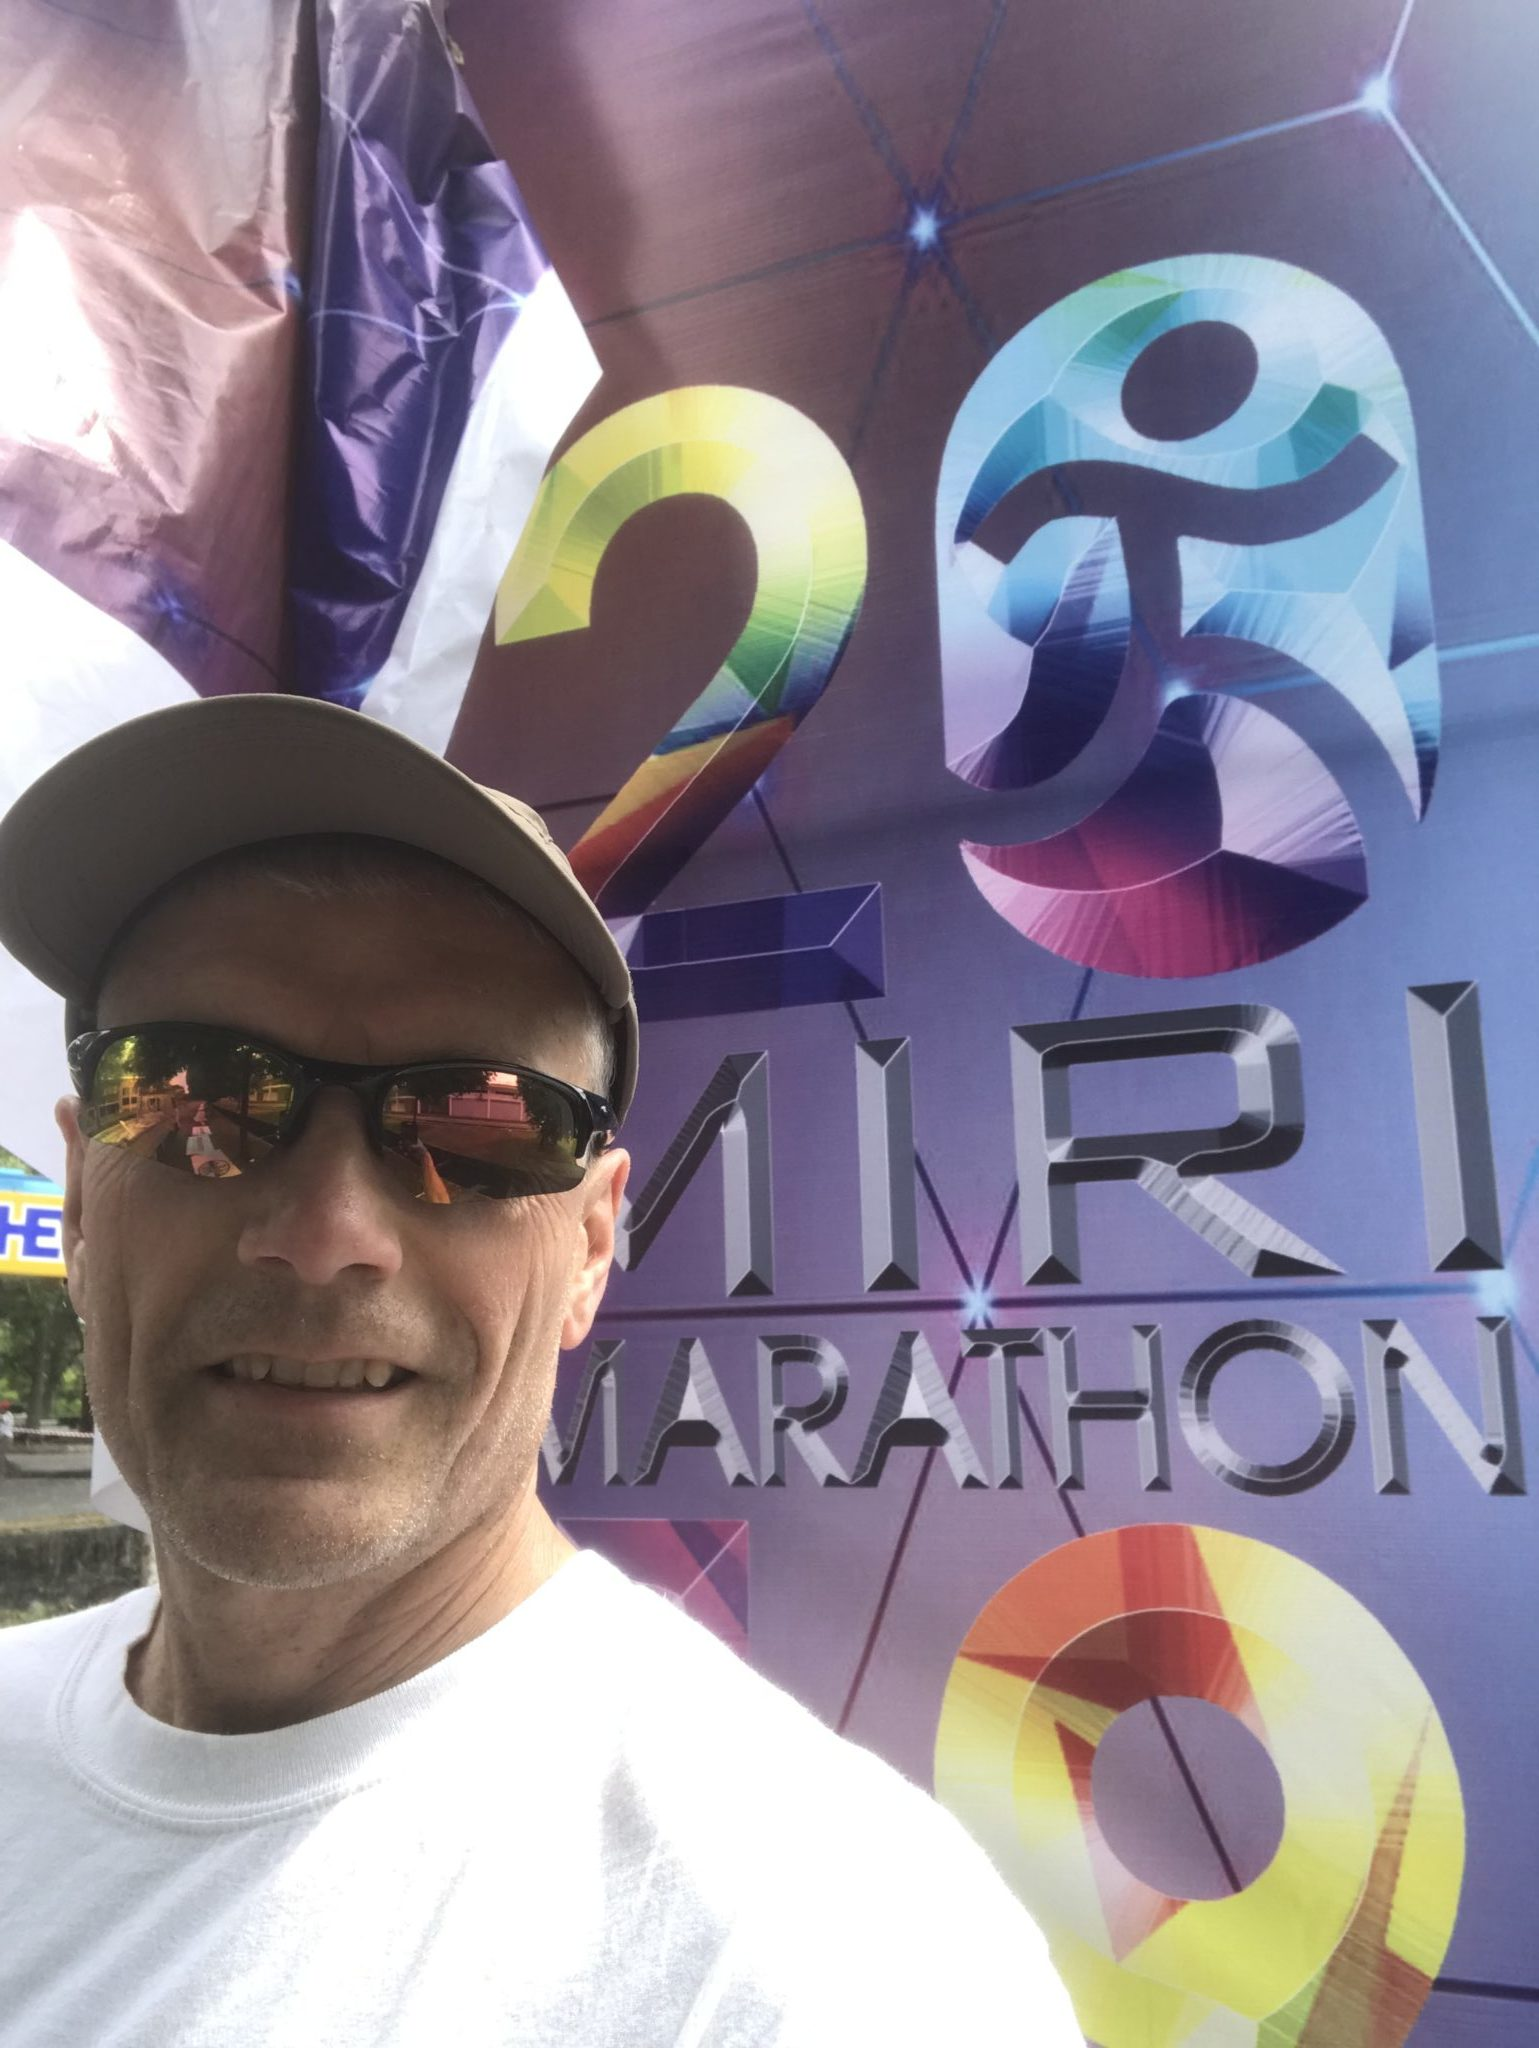 David Anderson at the Miri Marathon in Malaysia